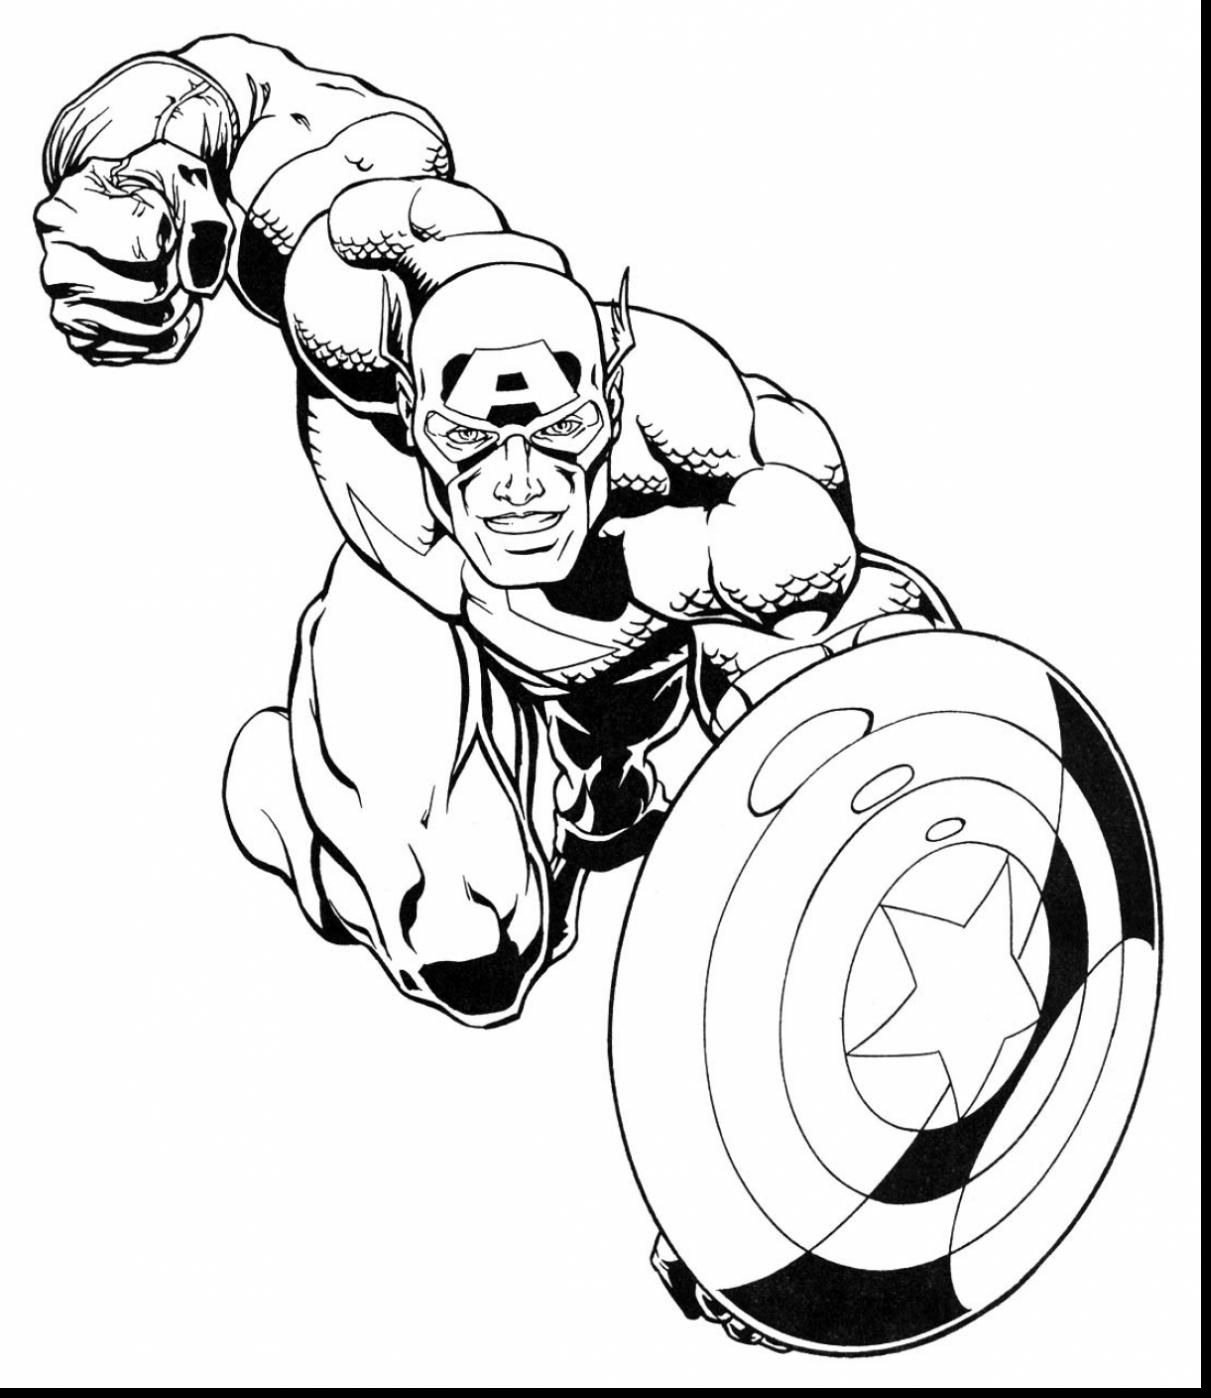 marvel superhero coloring pages lego marvel superhero coloring pages rhino coloring marvel coloring pages superhero